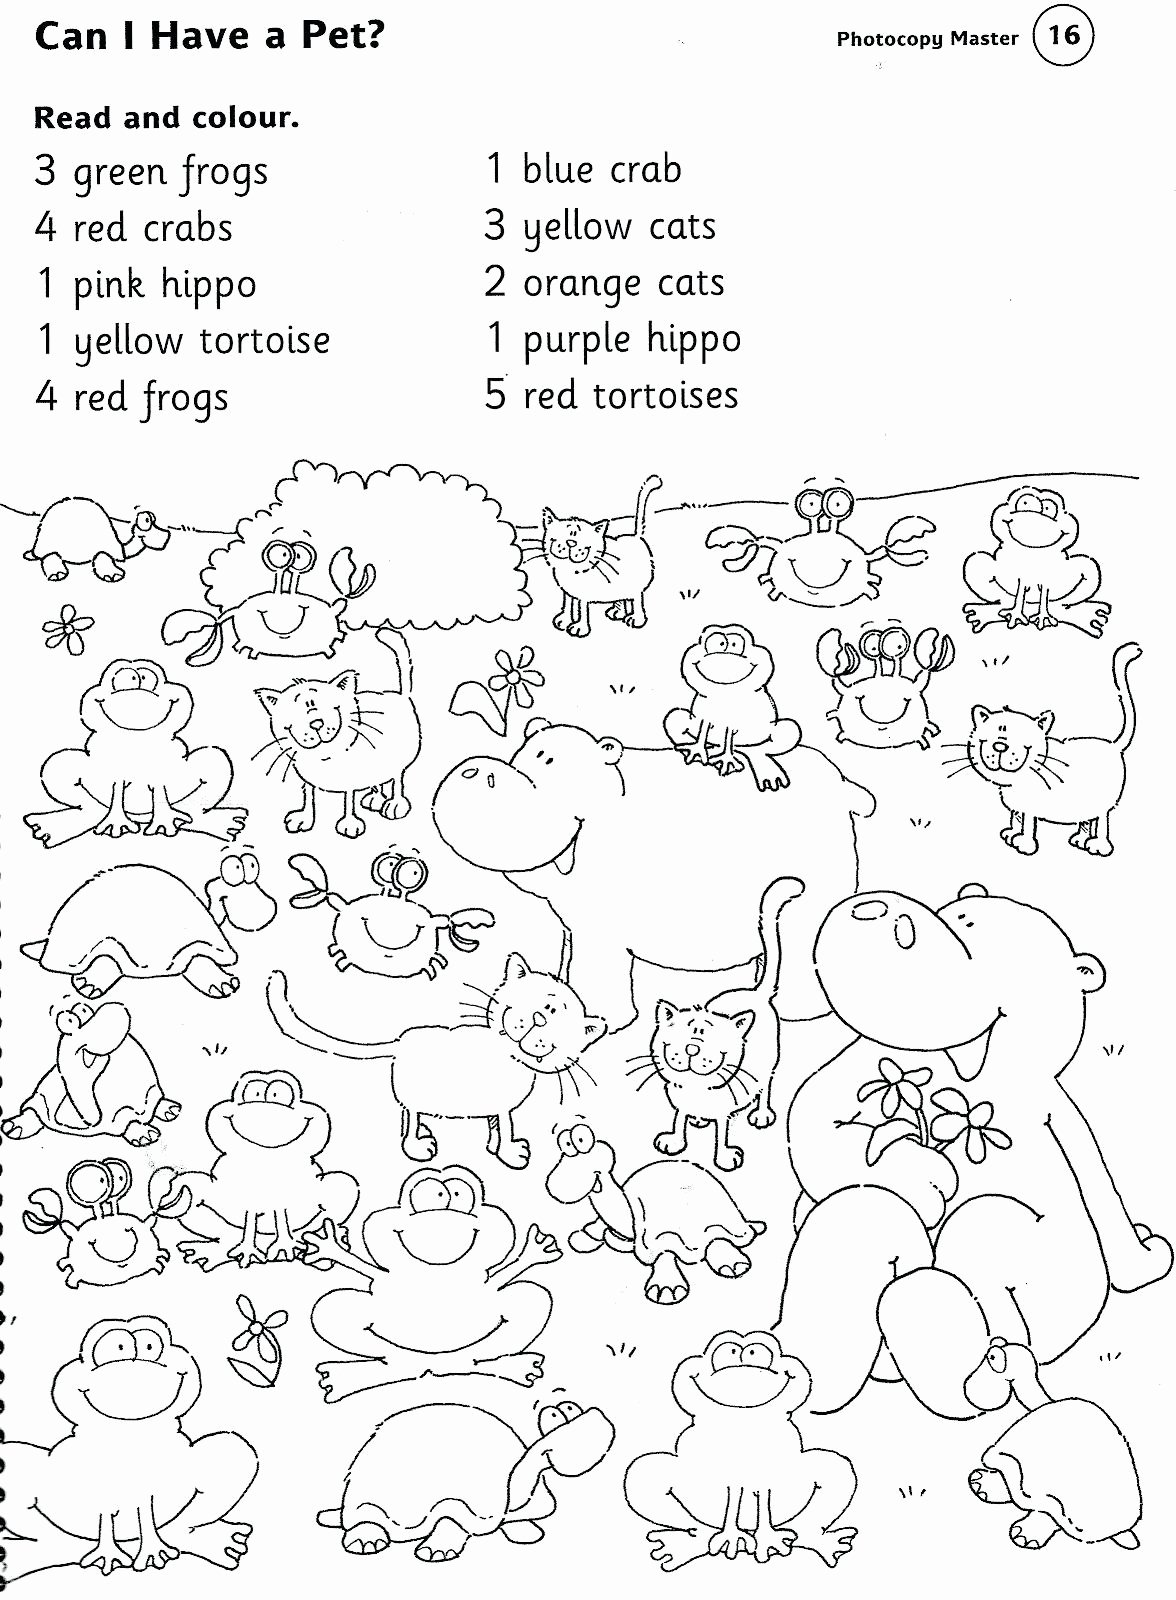 Pet Animals Worksheets for Preschoolers Unique Animal Printable Worksheets Pet Farm and Zoo Animals